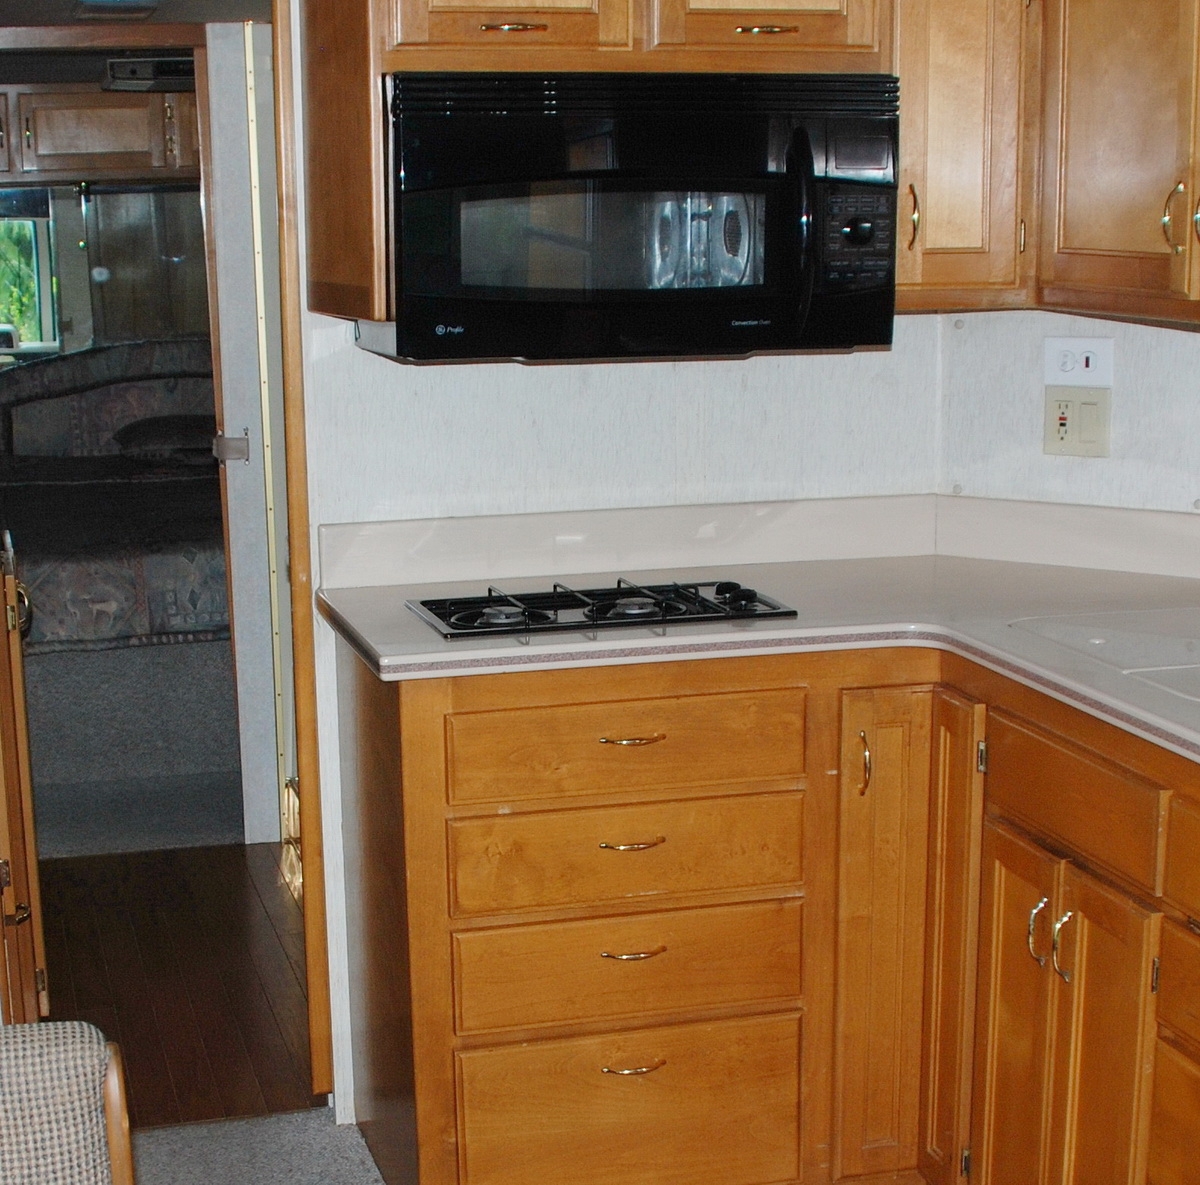 celtic safari galley stove won't stay lit ge profile range wiring diagram our 1996 safari sahara 3530 came with a seaward princess 2273 two burner stove these stoves have a safety feature built into the gas valve for each burner